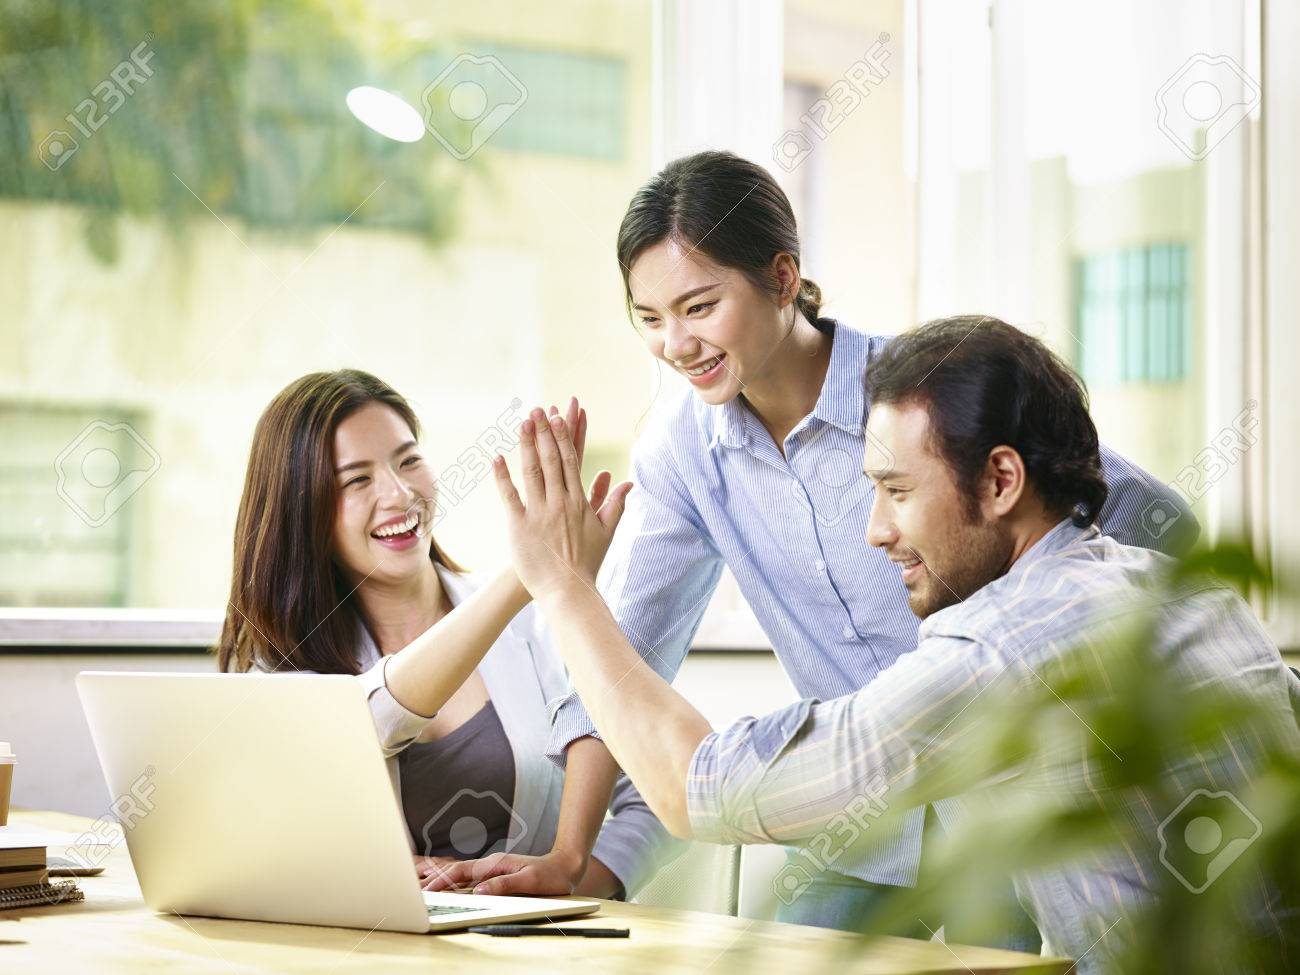 young asian business person giving coworker high five in office celebrating achievement and success. - 81035336